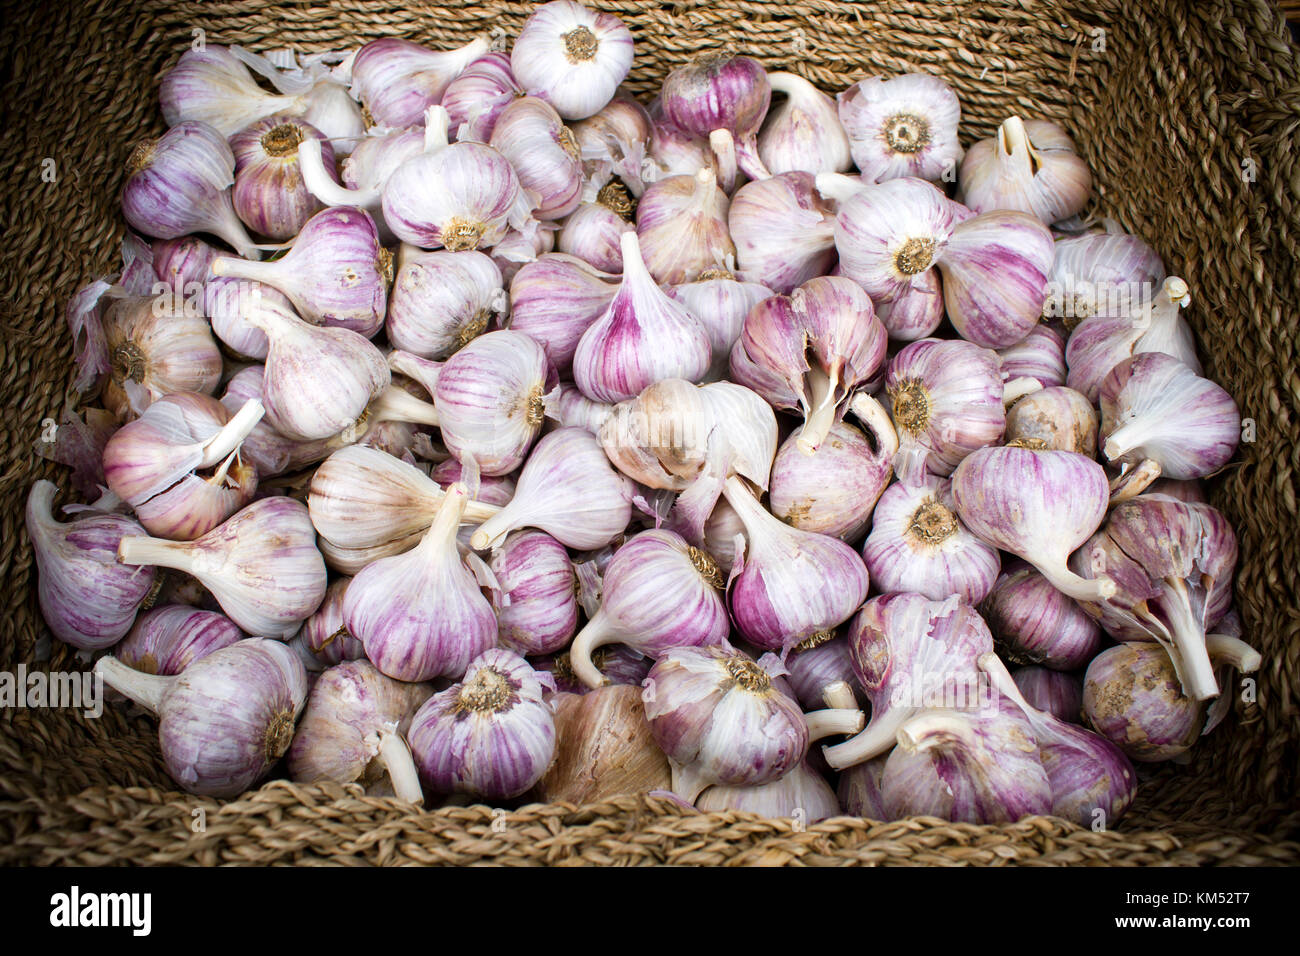 Fresh ripe organic garlic at the weekend farmer's market in Penticton, British Columbia, Canada. The farmer's - Stock Image